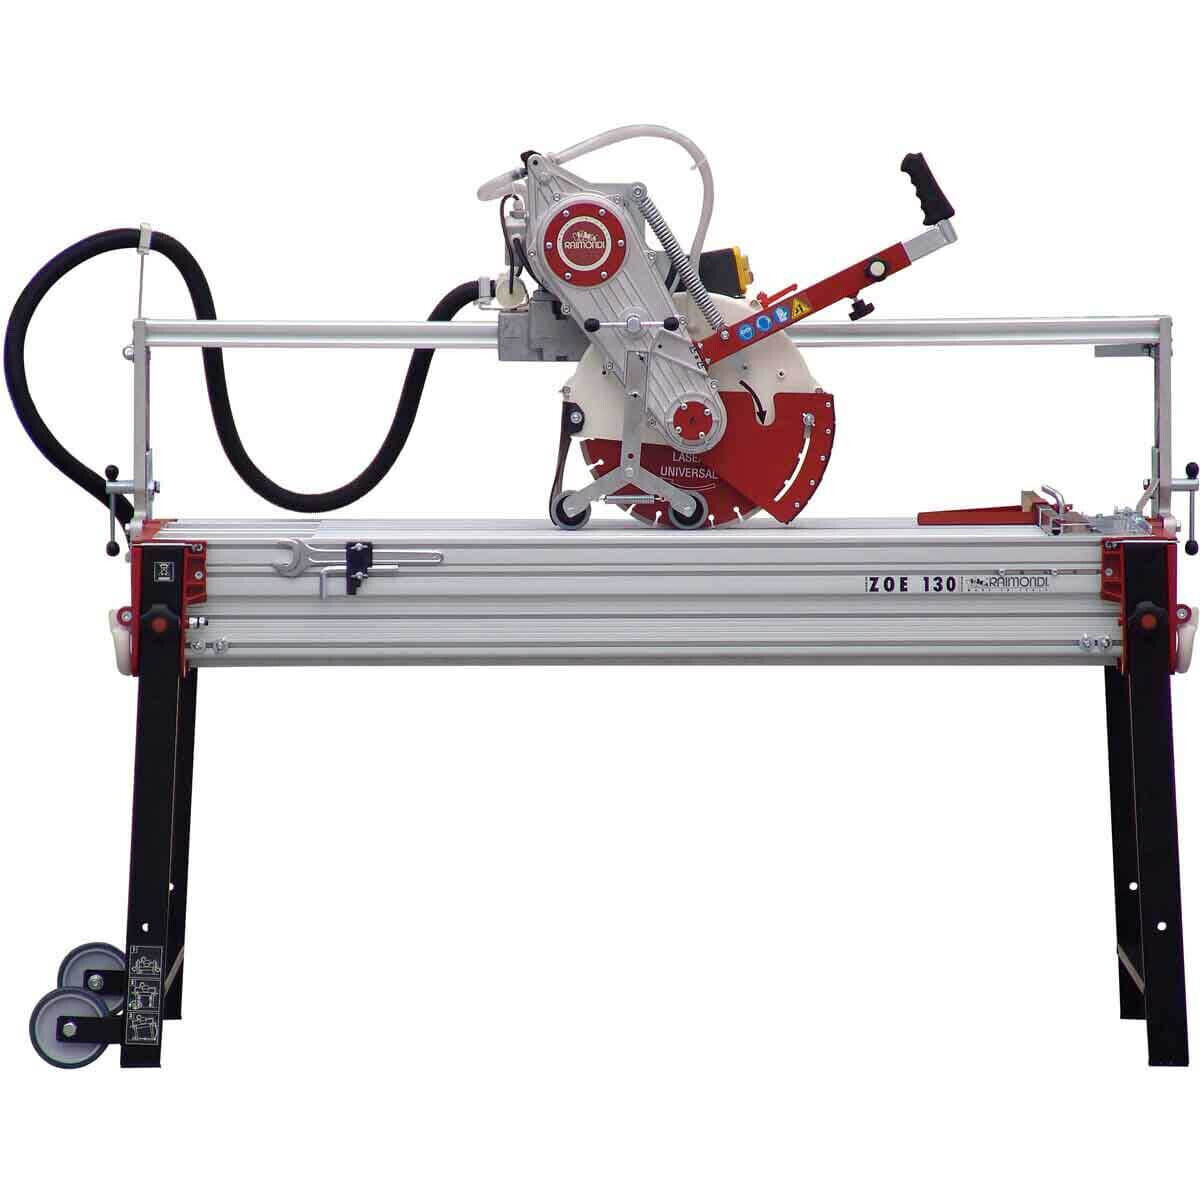 Raimondi Zipper Advanced 130 Rail Saw side view